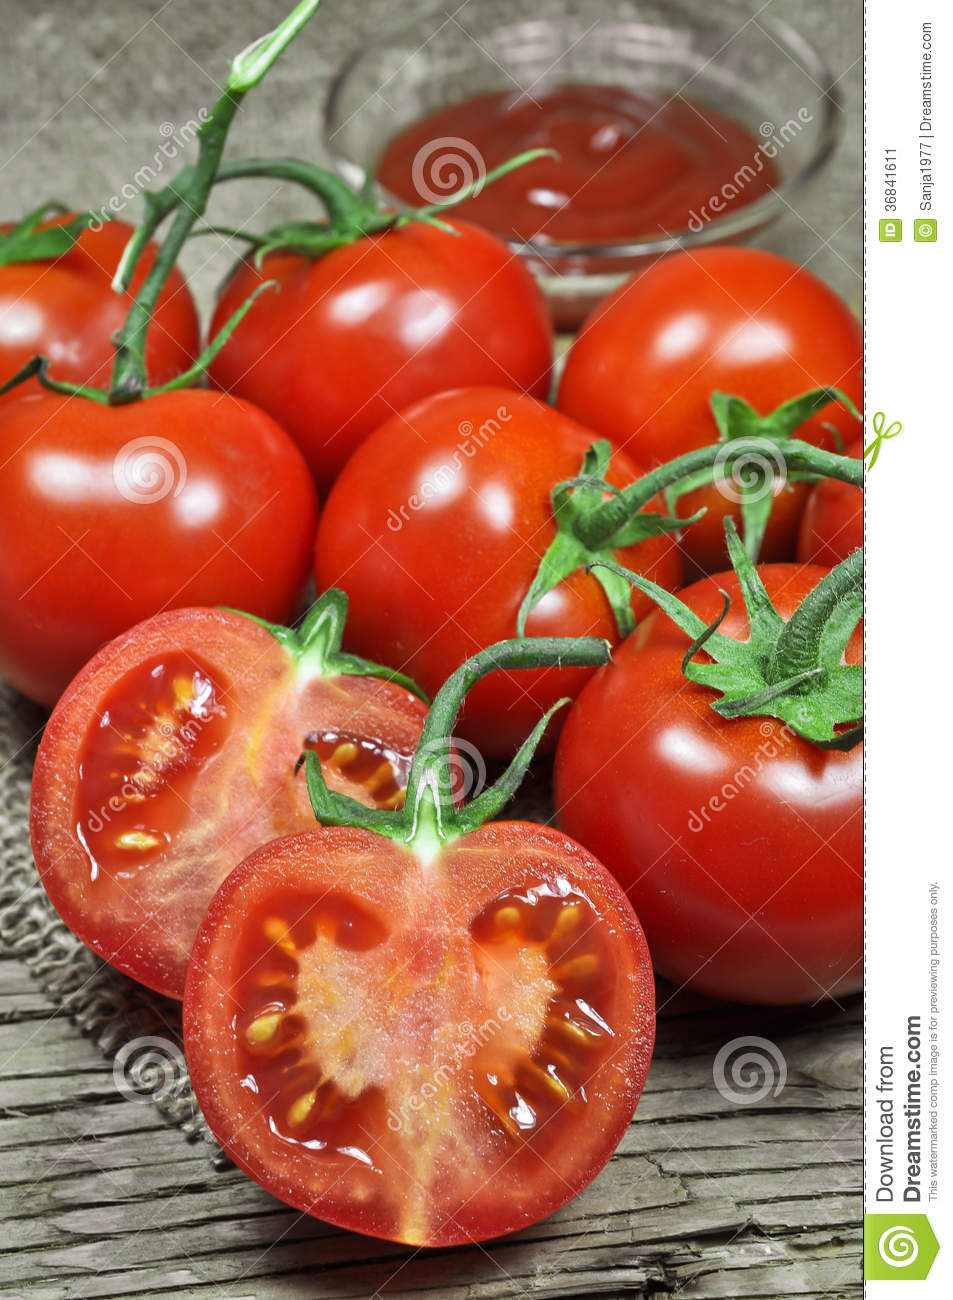 Fresh Red Tomatoes And Ketchup Stock Image - Image: 36841611